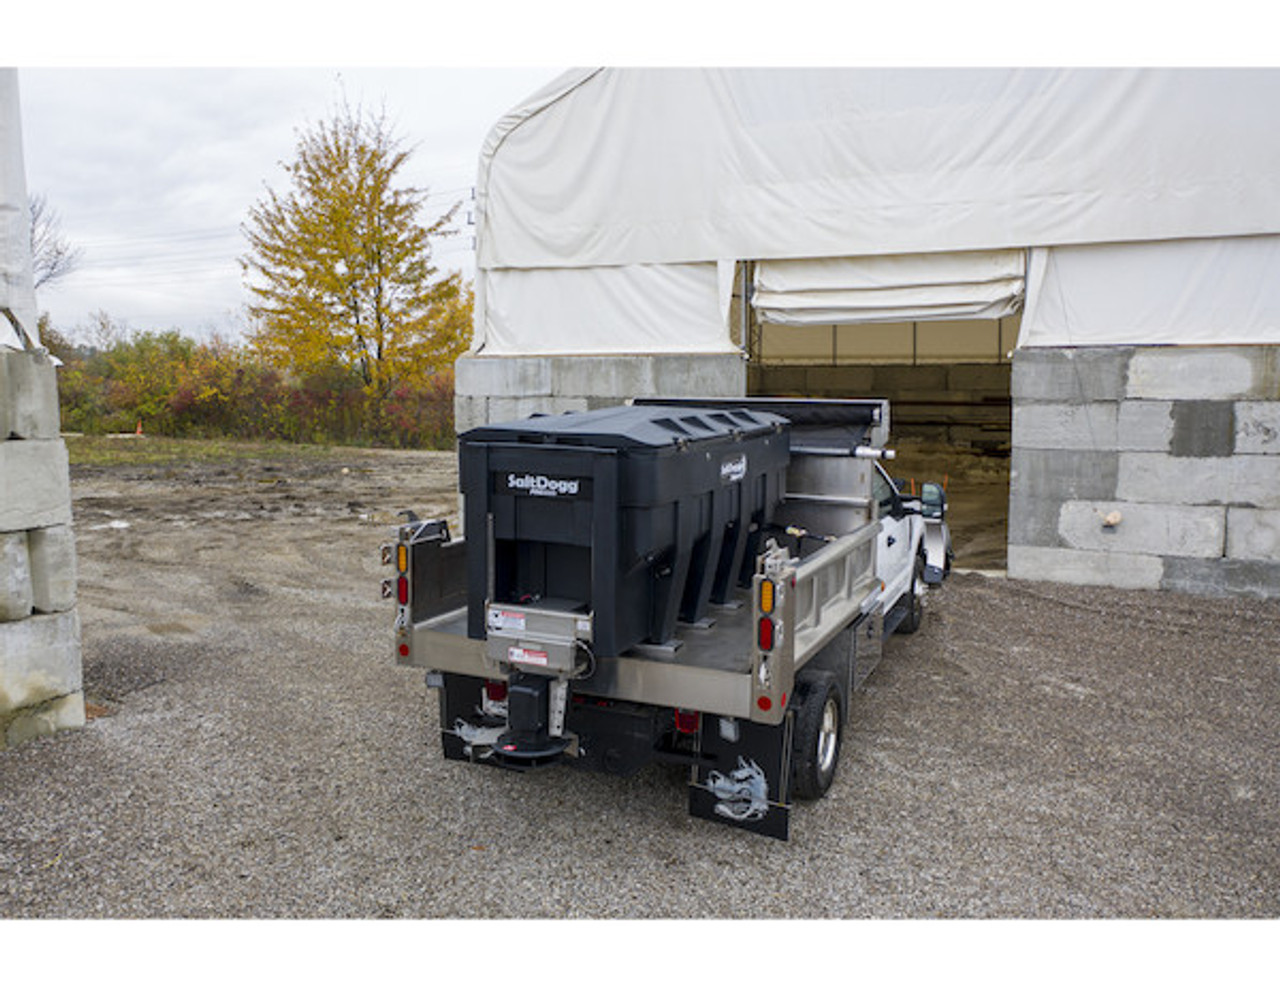 PRO3000 BUYERS SaltDogg® PRO3000 Electric Poly Hopper Spreader With Auger 3